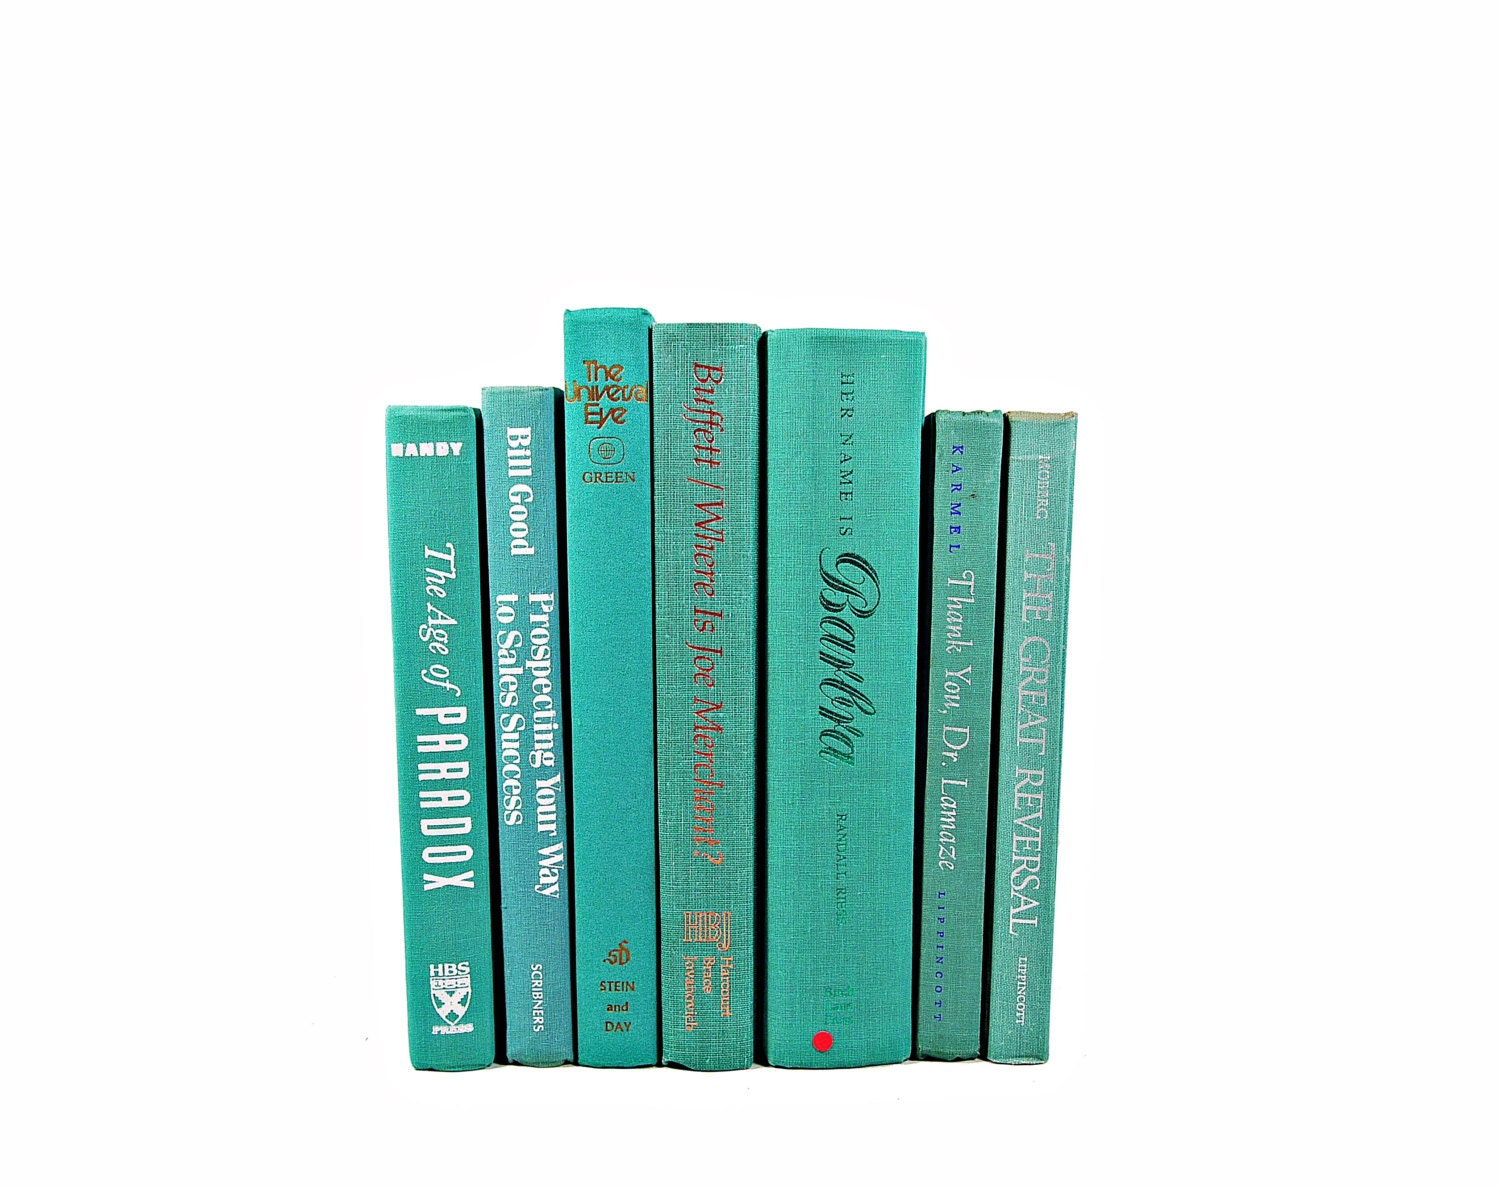 Teal Turquoise Decorative Books Book Collection By